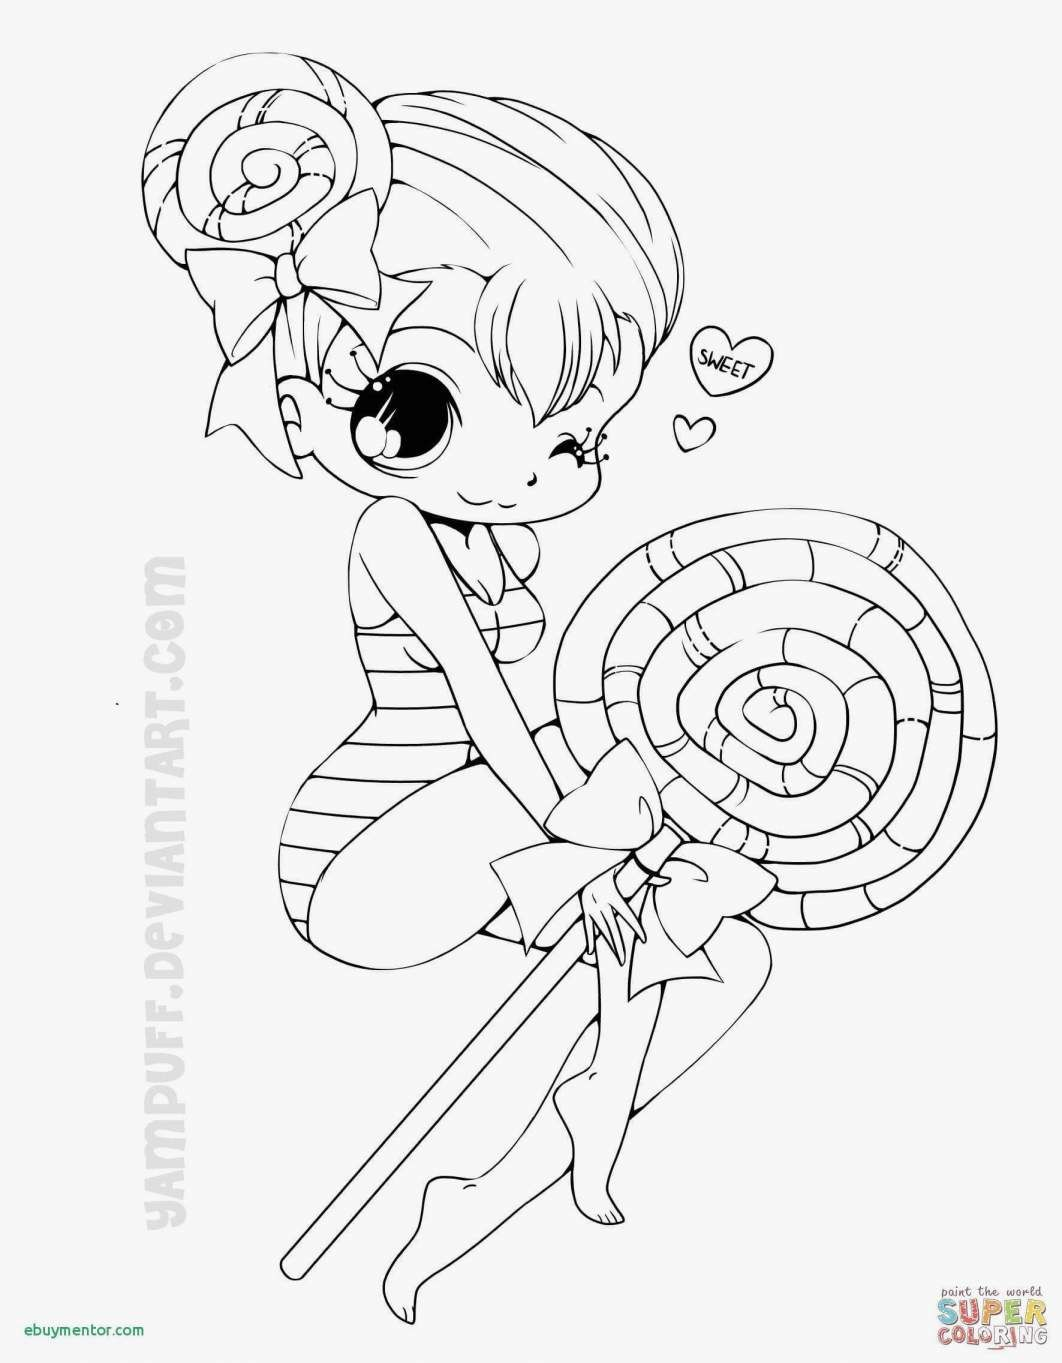 Free Printable Christmas Coloring Pages And Crafts 20 Fresh Chibi Anime Coloring Pag Chibi Coloring Pages Coloring Pages Inspirational Coloring Pages For Girls